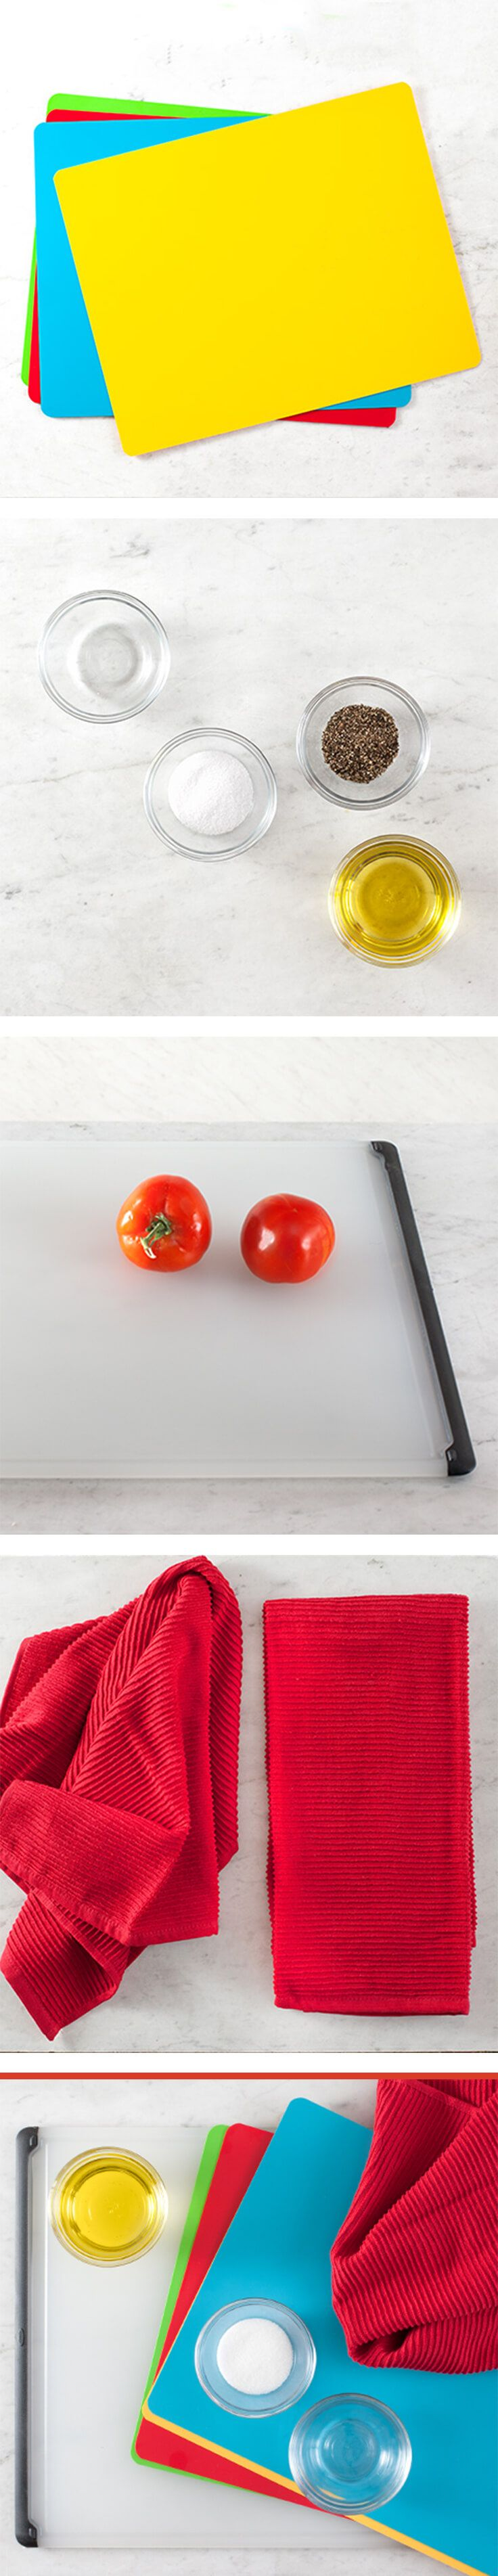 35 best ideas about kits for cooks on pinterest best iron home canning and cooking - Cutting board with prep bowls ...